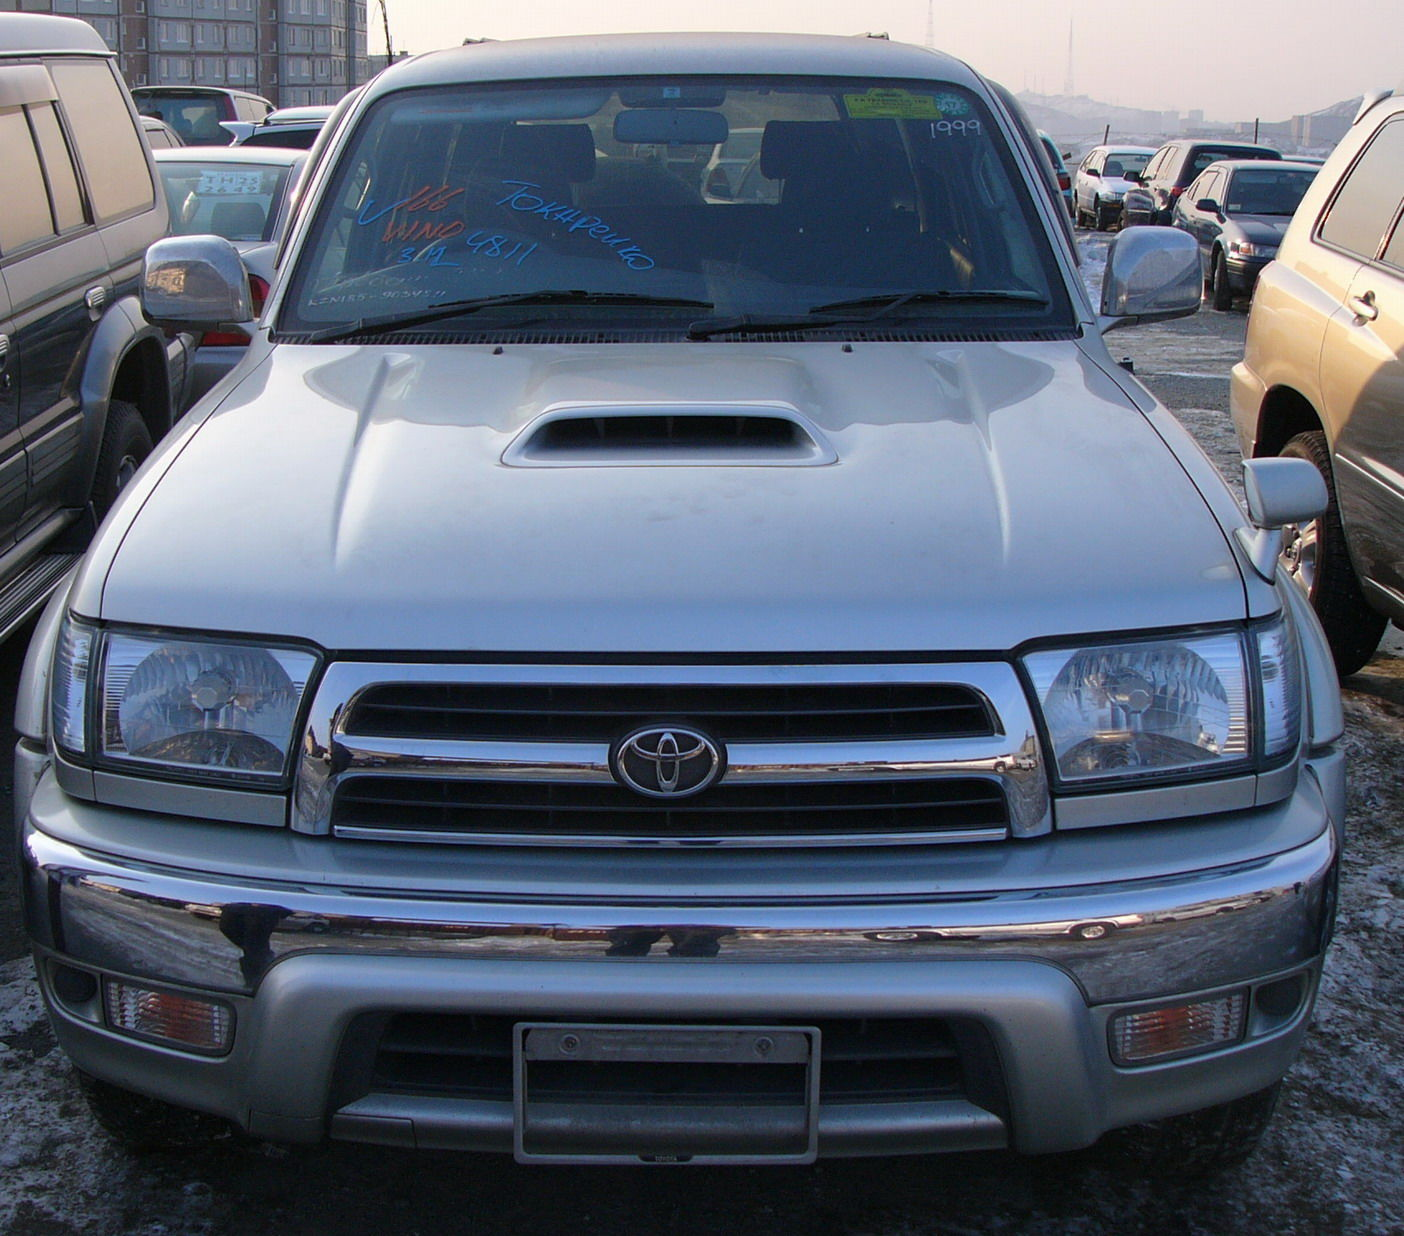 Toyota Suff: 1999 Toyota Hilux SURF Pictures For Sale